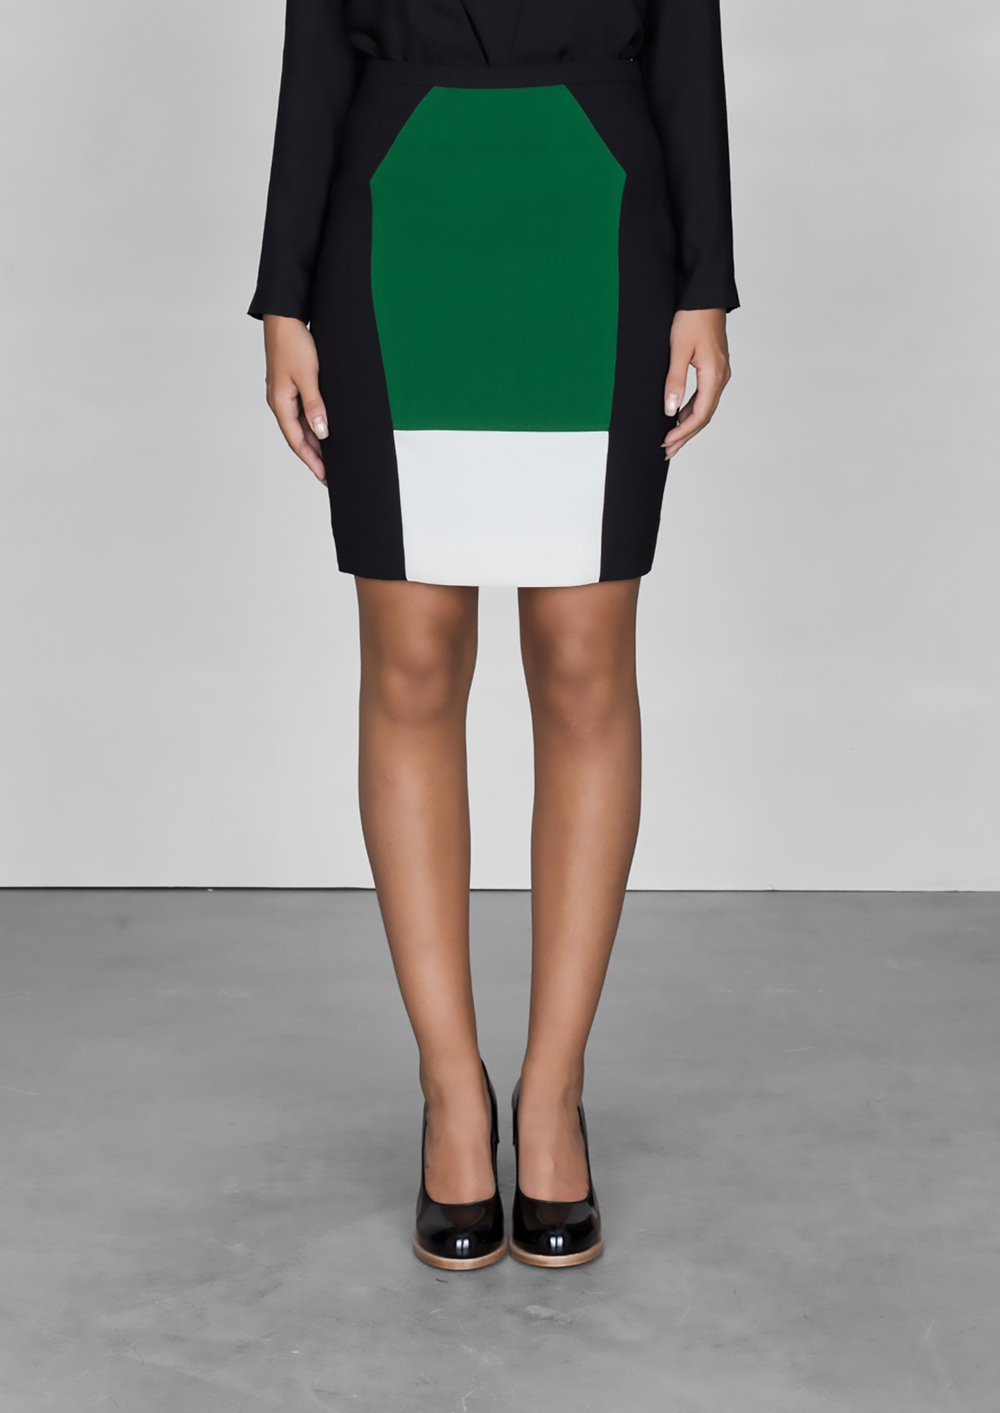 &otherstories colour block pencil skirt copy 1500.jpg